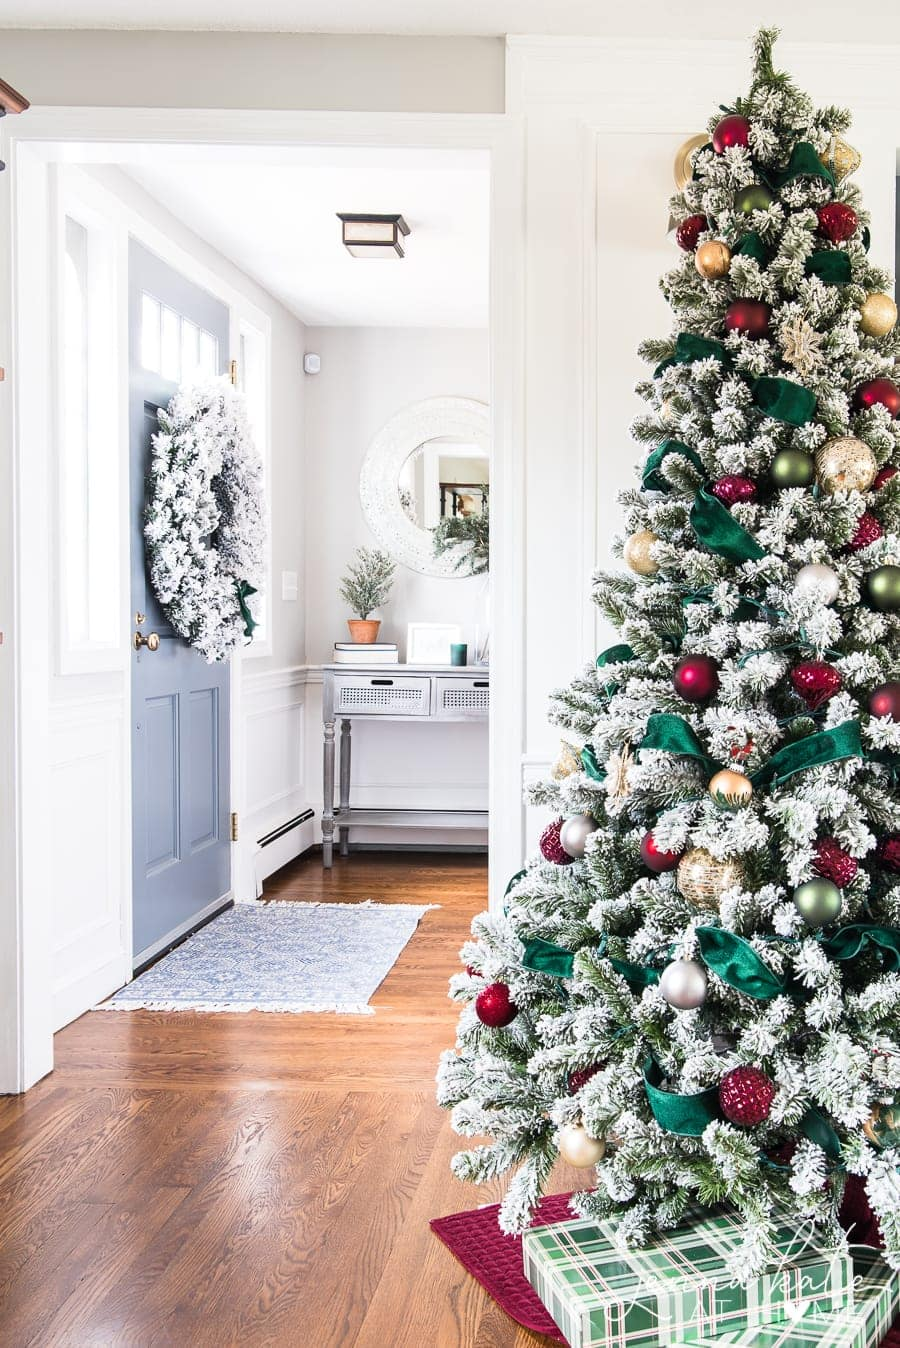 How to make a Christmas tree look expensive